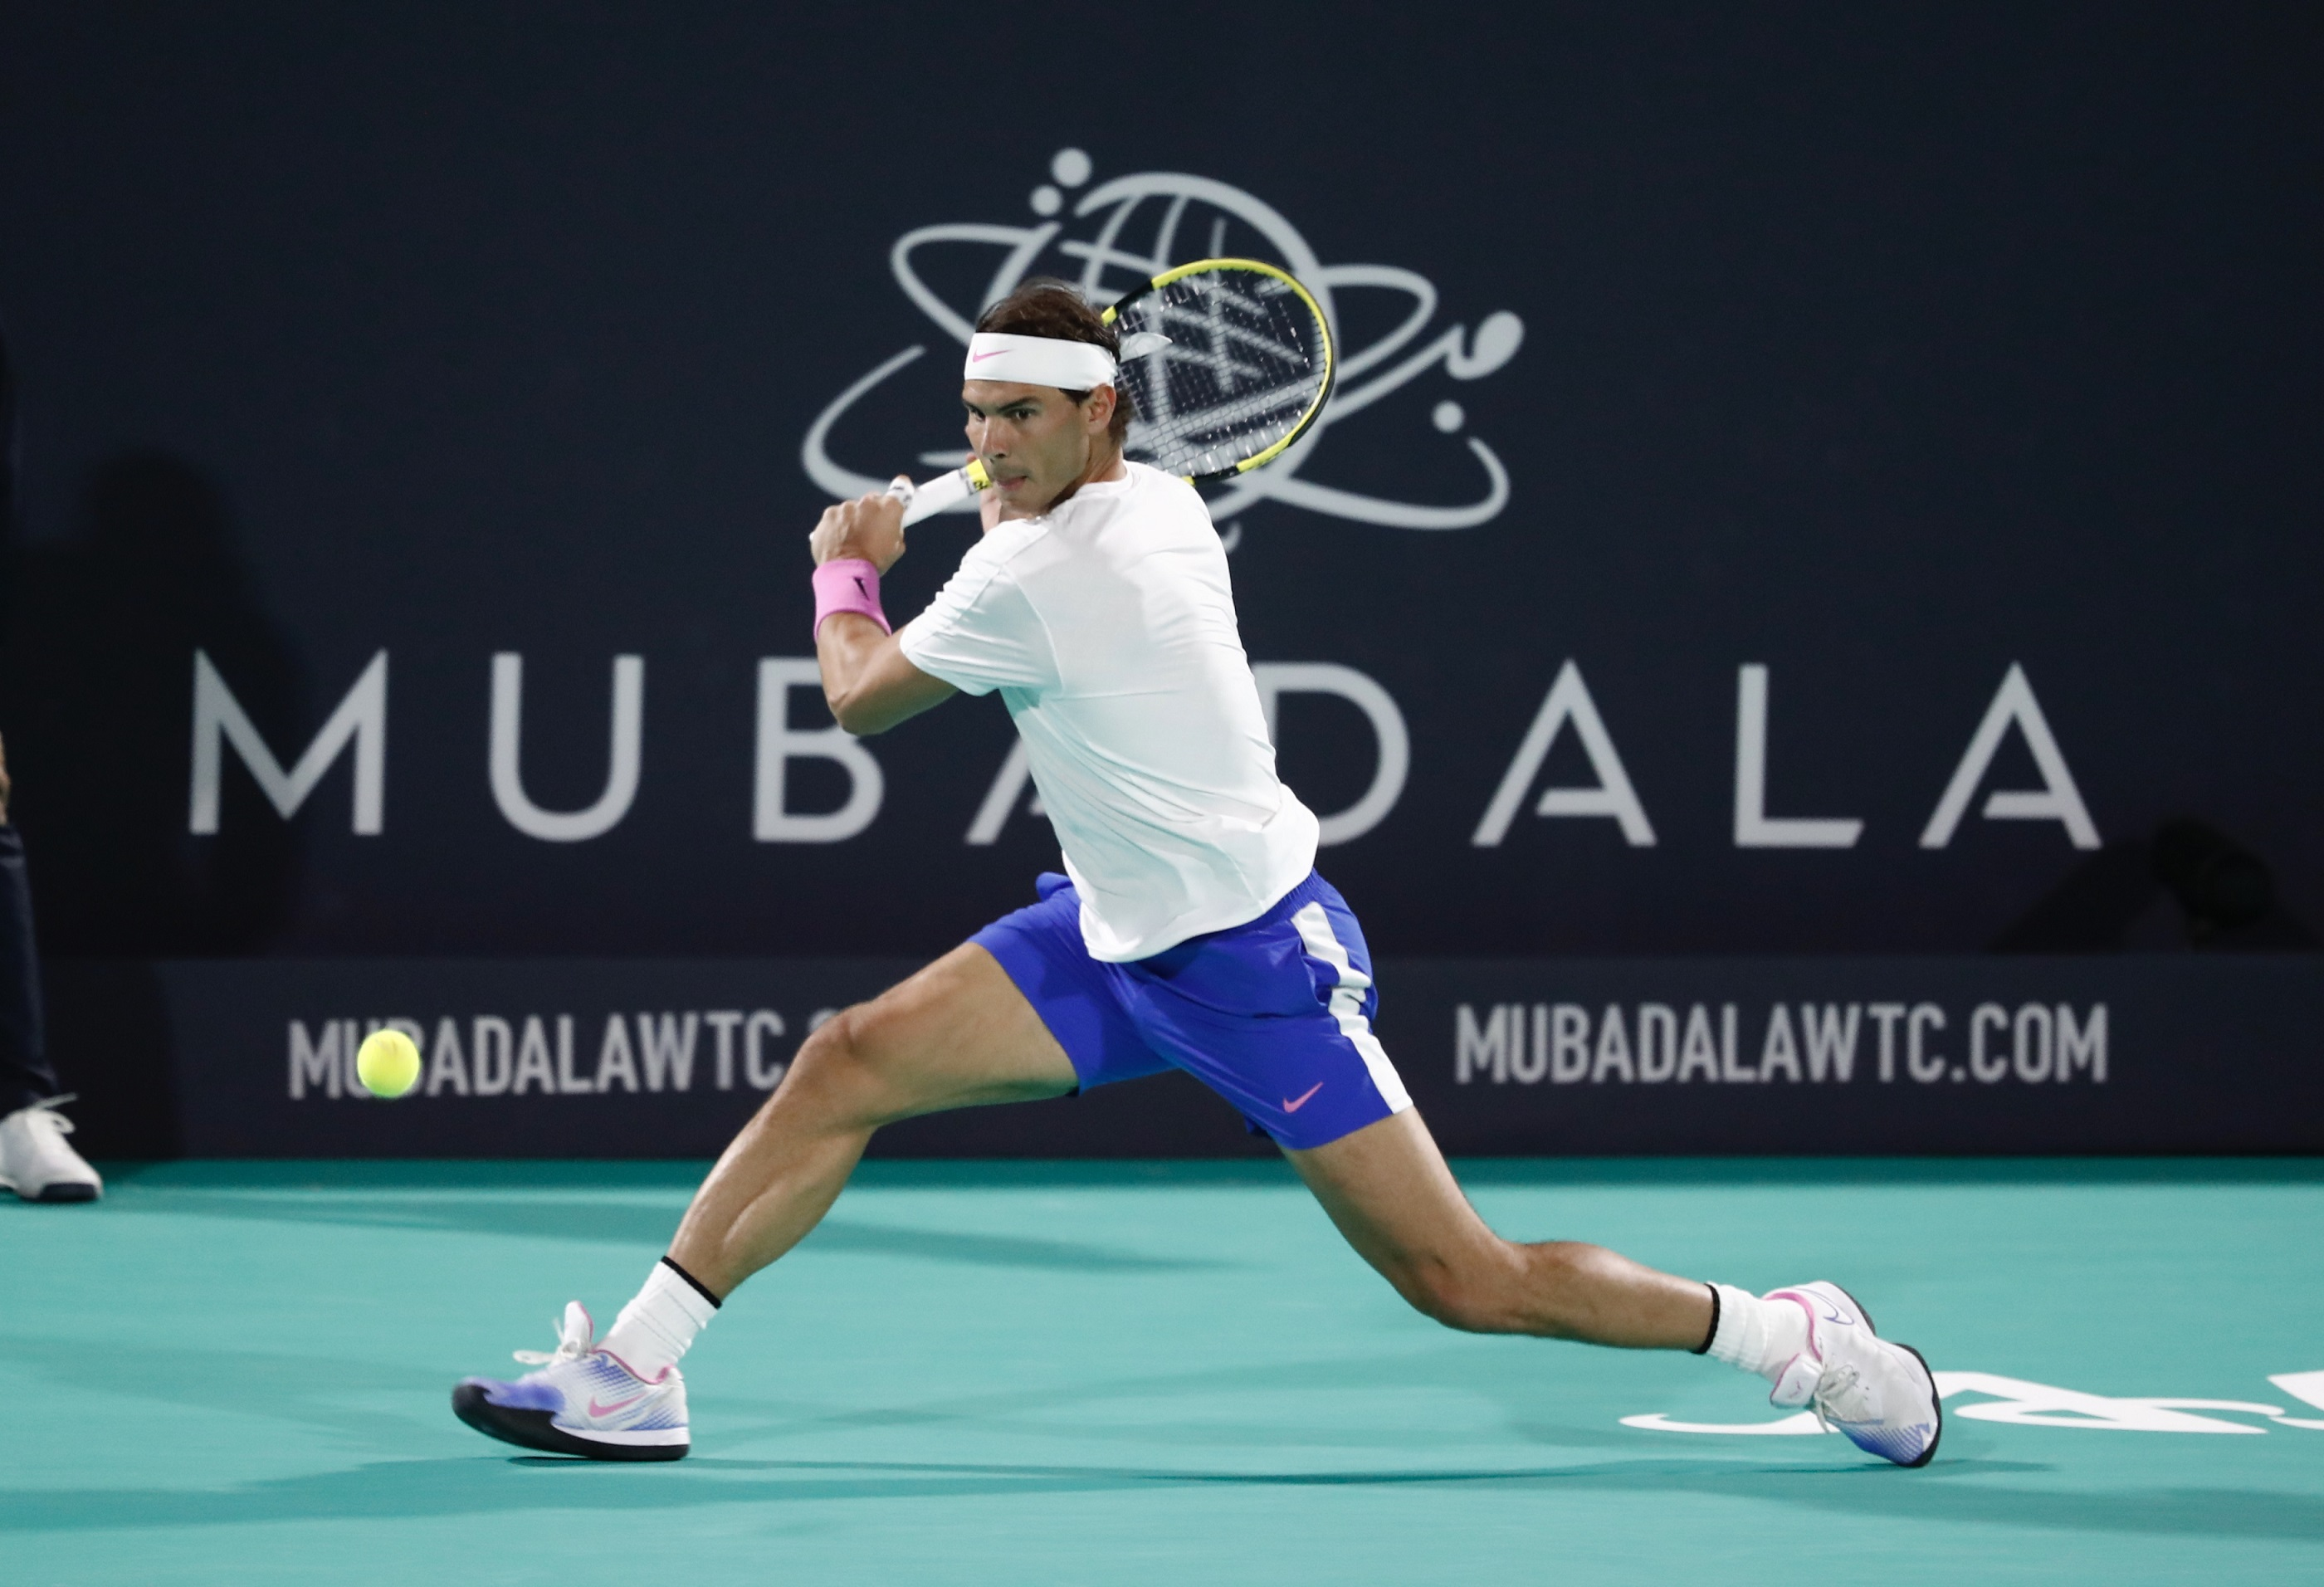 Nadal Wins Fifth Mubadala World Tennis Championship Title With Victory Over Tsitsipas Esquire Middle East